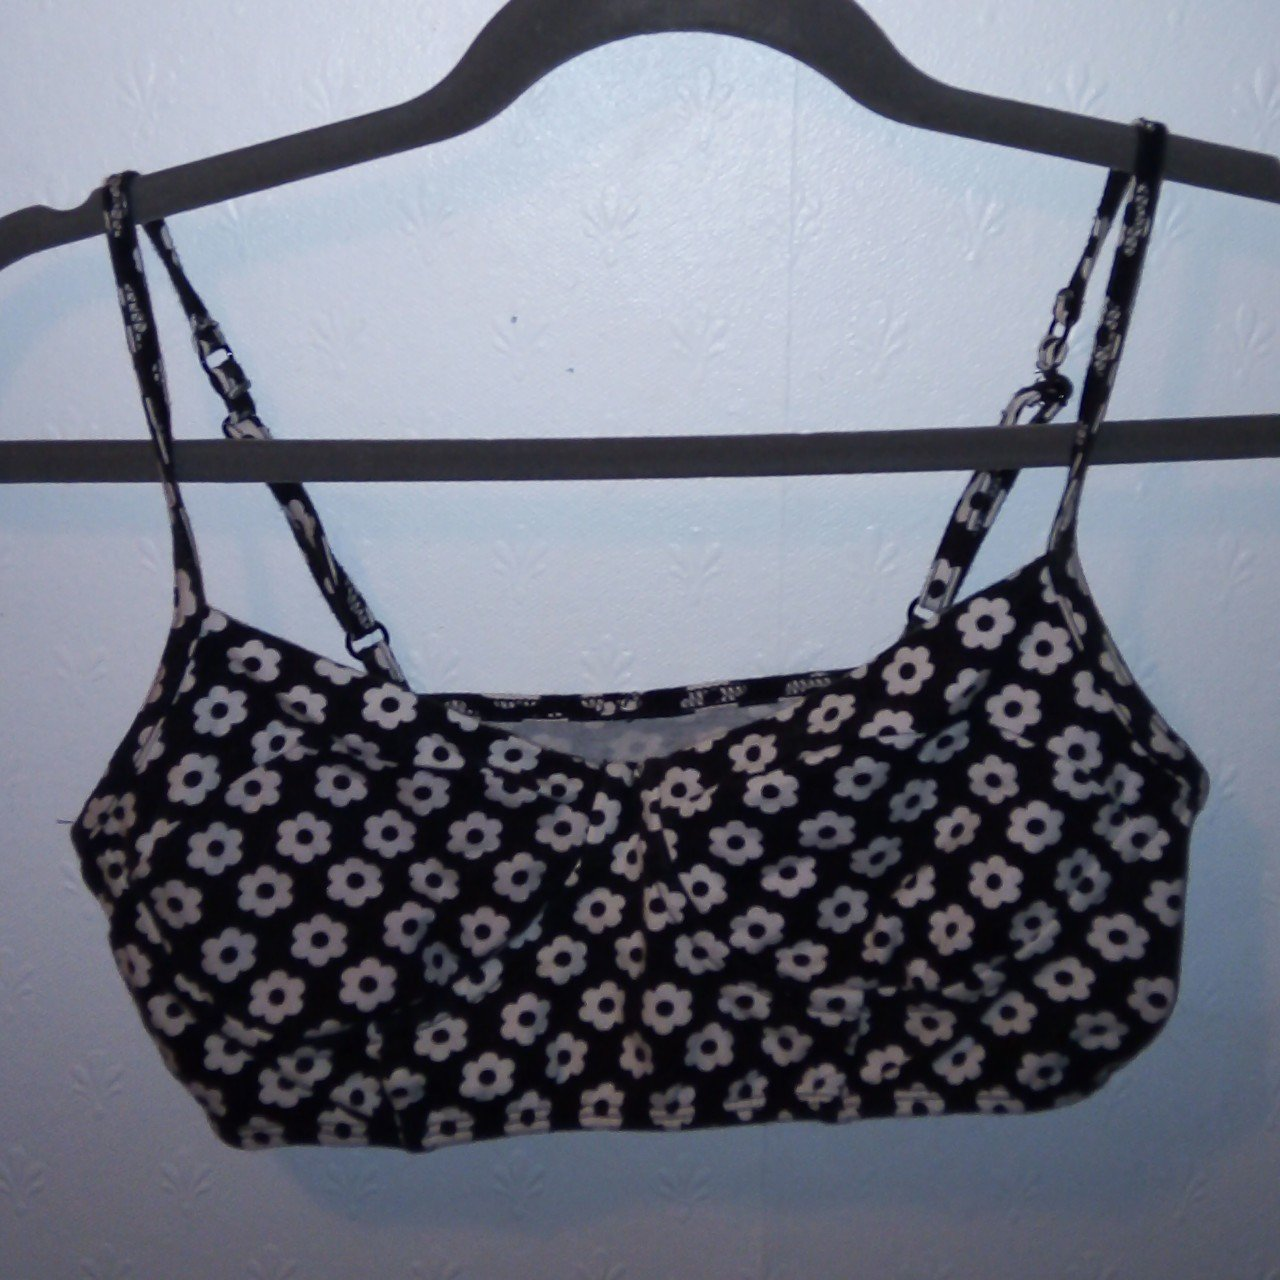 c38034fd4502a8 Forever 21 black white floral bralette top size small - Depop